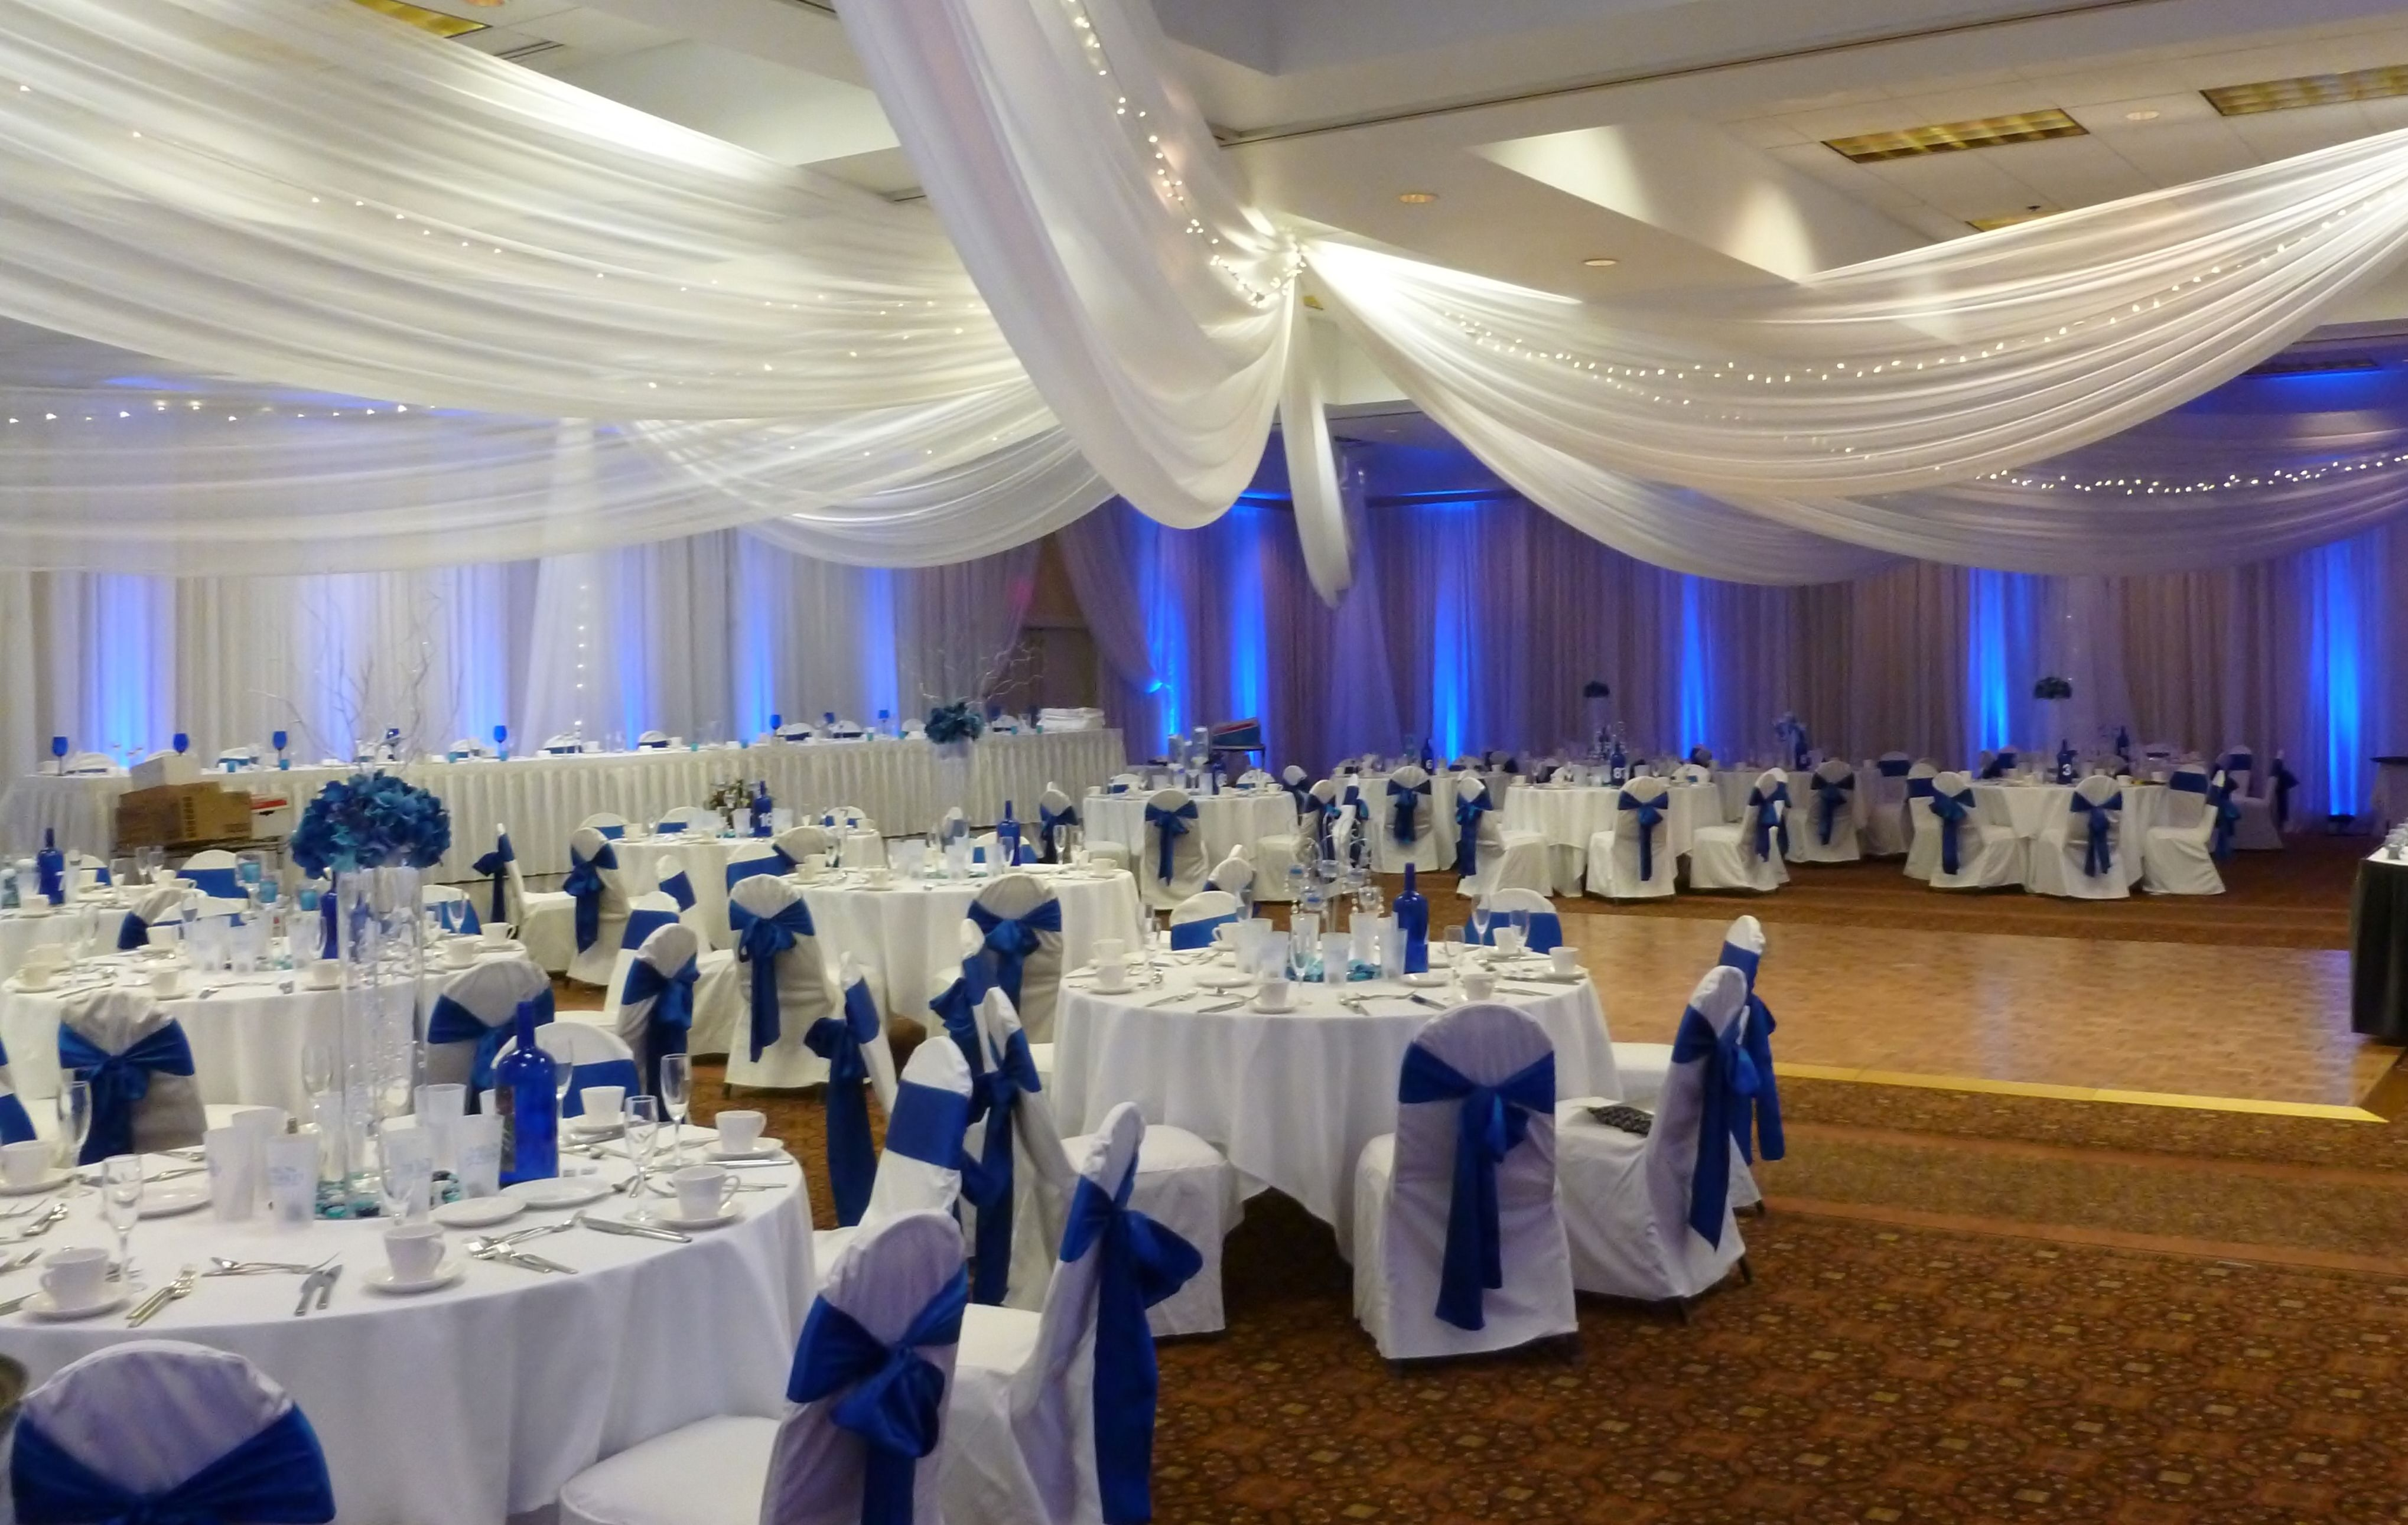 White Ceiling Drape, White Chair Covers with Royal Blue